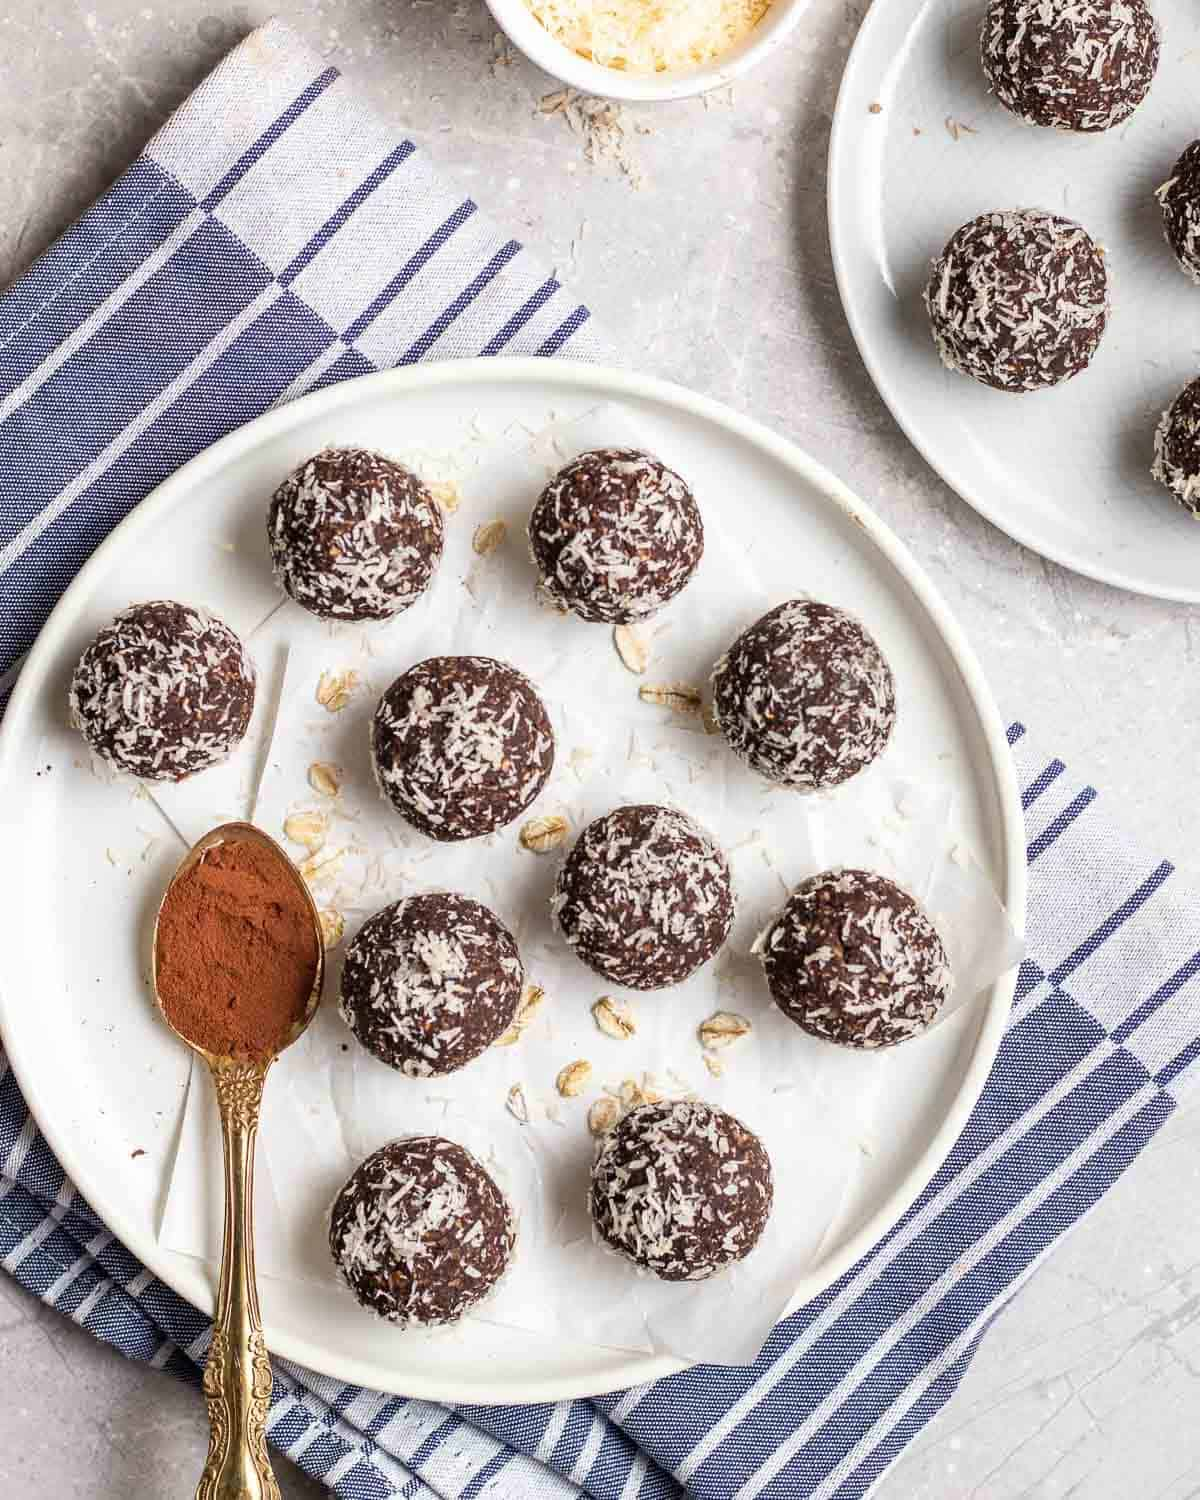 Protein balls arranged on a white plate with a spoonful of cocoa powder beside.